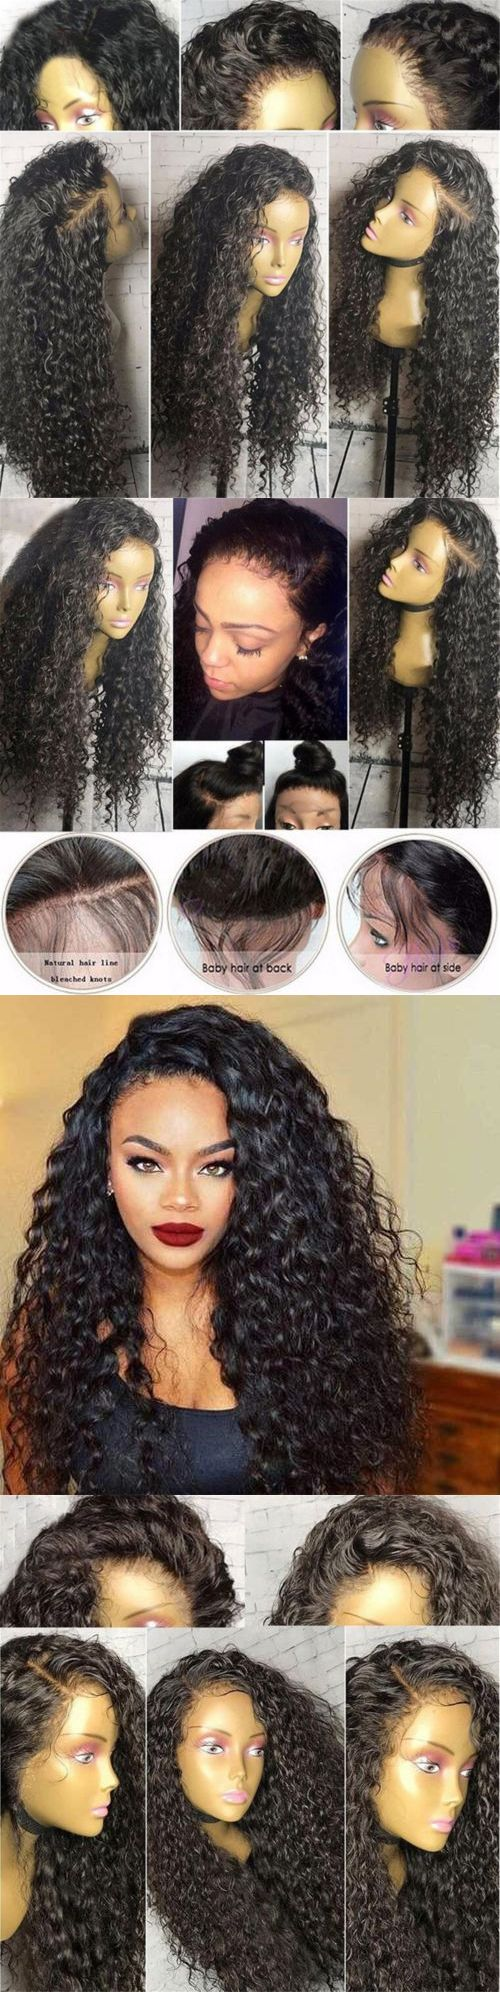 Wigs and Hairpieces: Women Kinkly Curly Black Hair Wig Synthetic Lace Front Wigs Natural Looking Wigs -> BUY IT NOW ONLY: $36.79 on eBay!